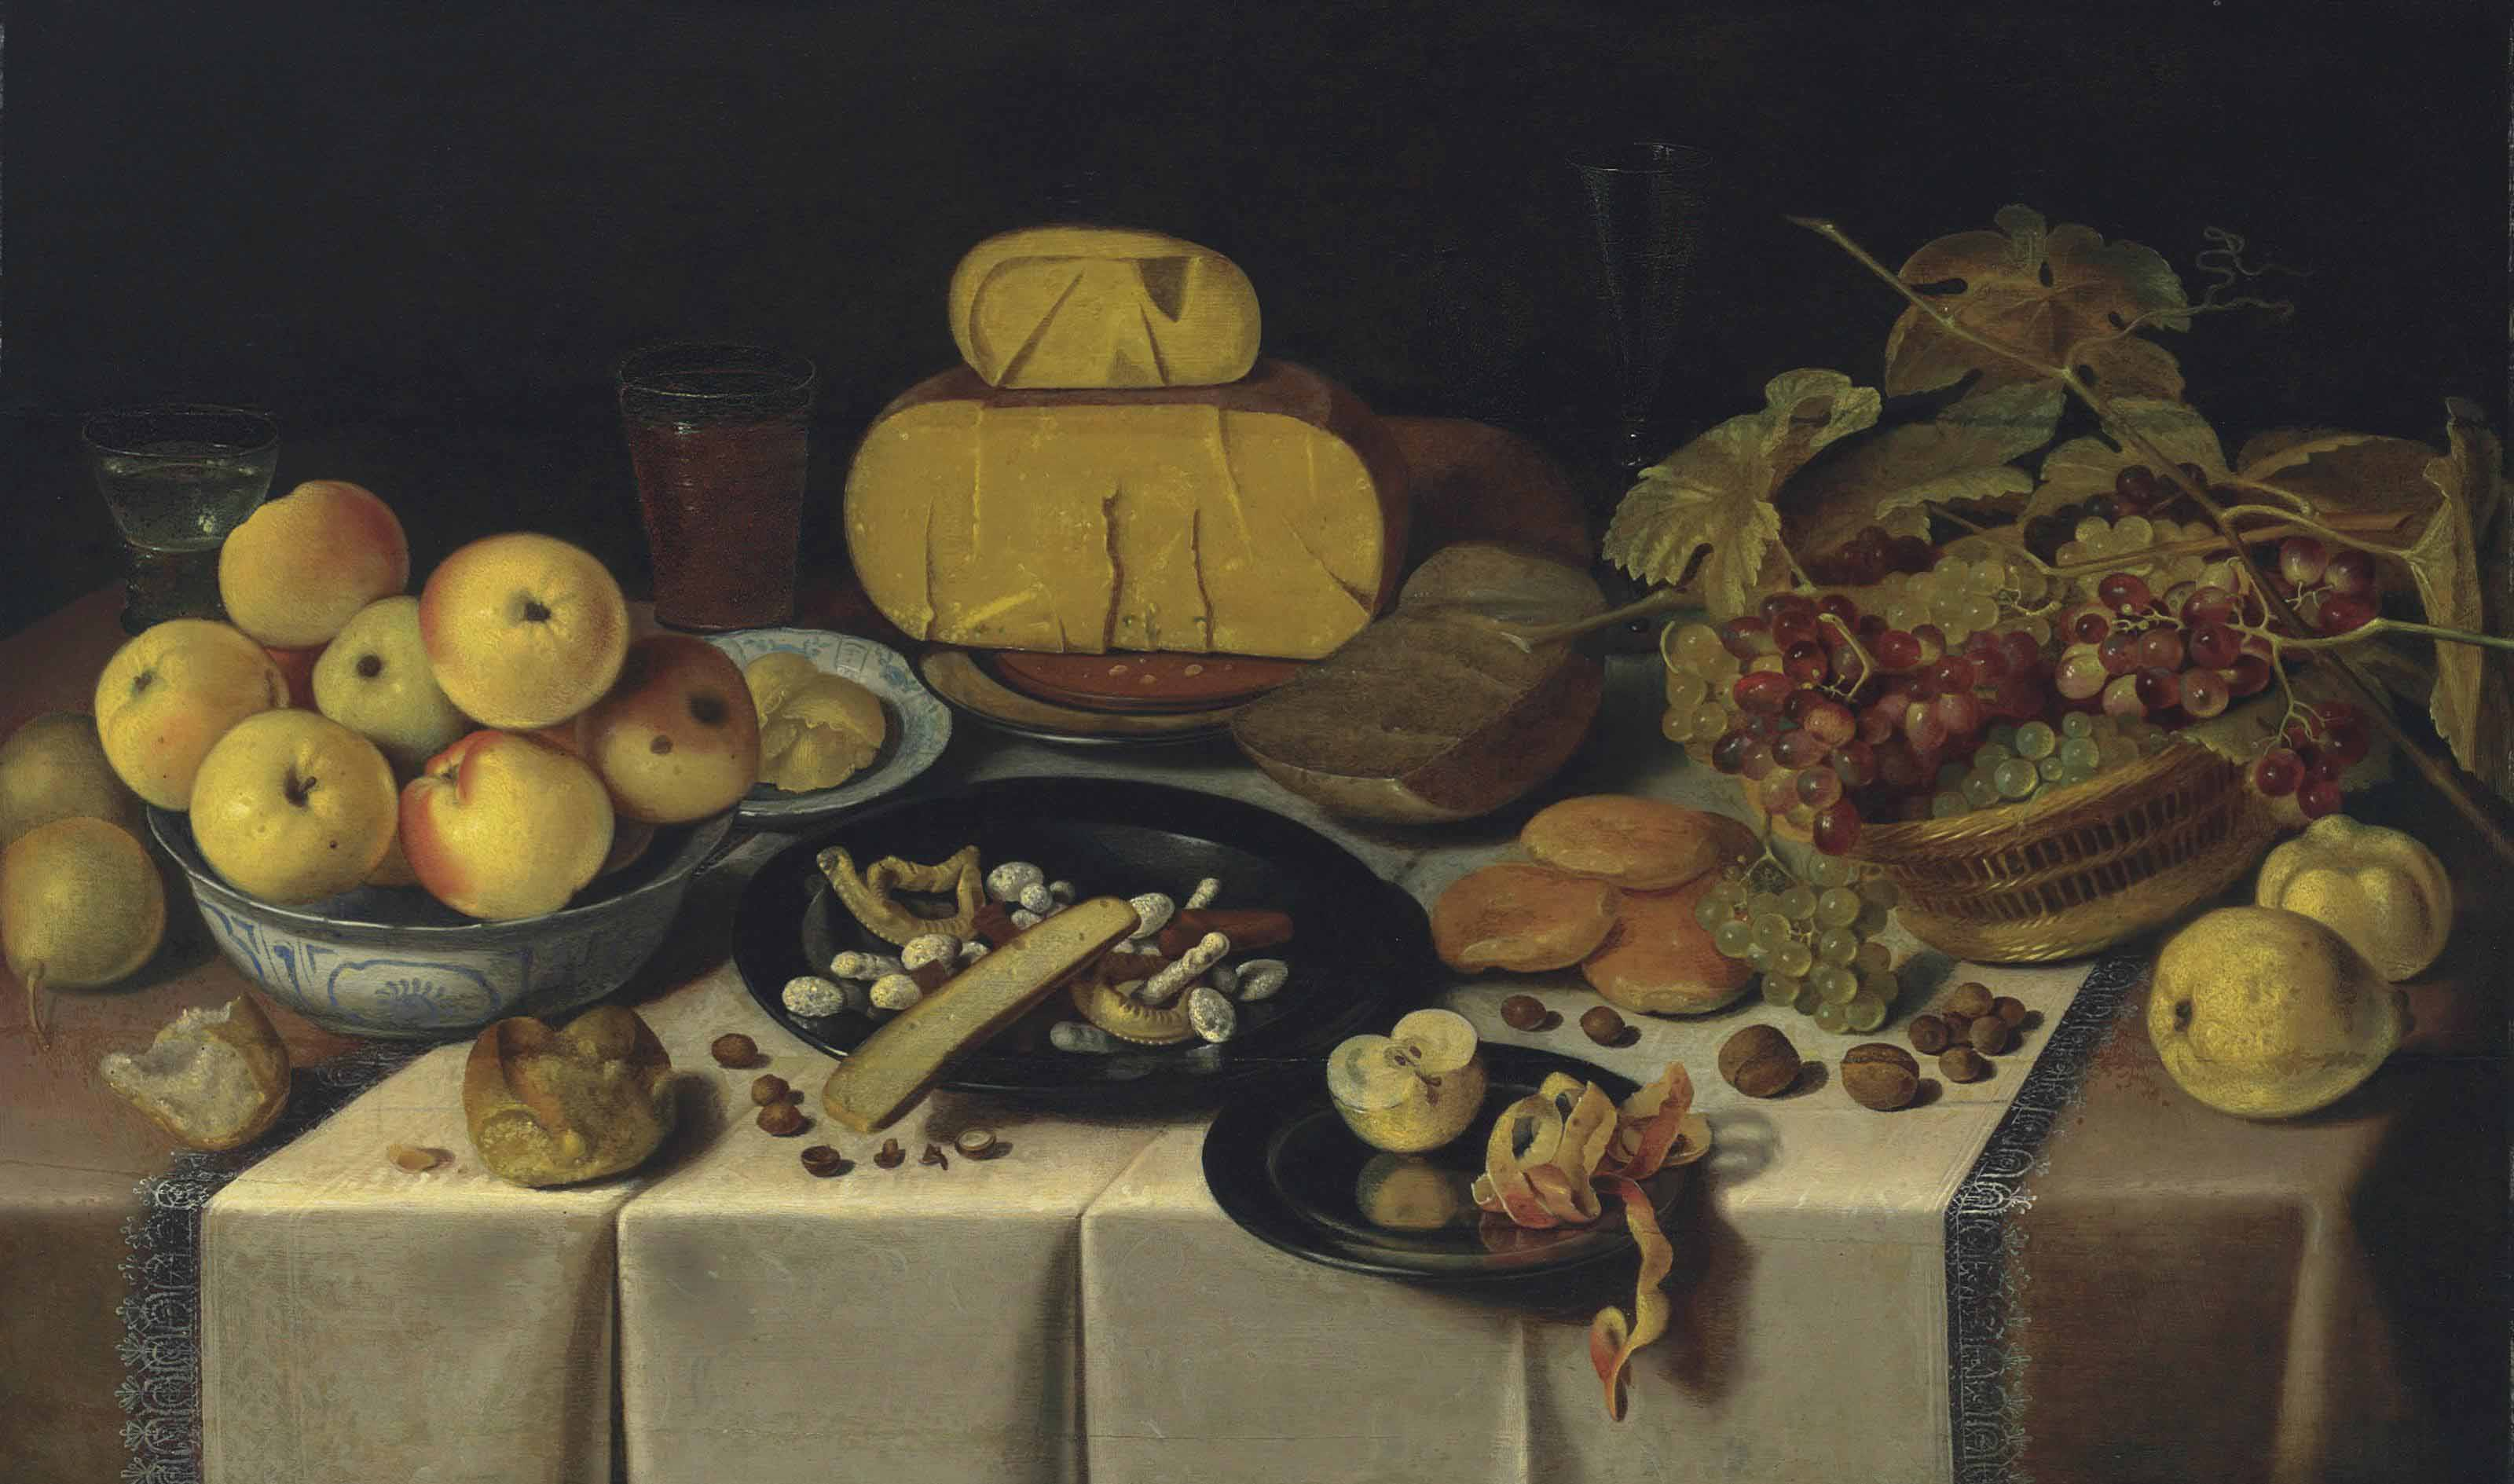 A banquet with cheese and fruit on pewter plates, a basket of grapes, apples in a Wan-Li Kraak porcelain bowl, and bread and glasses on a draped table